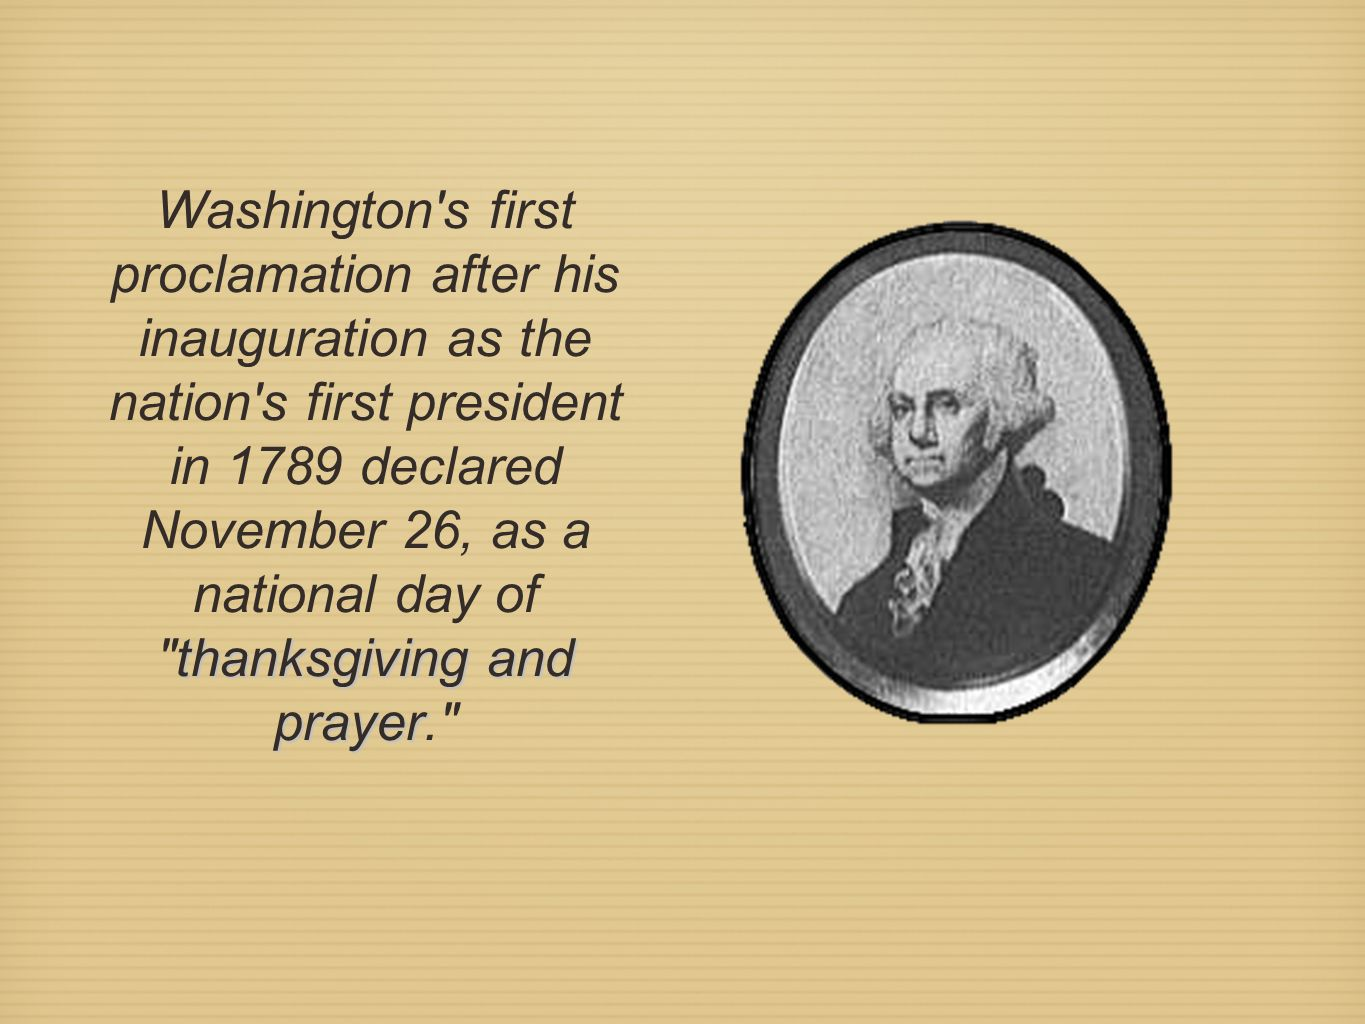 thanksgiving and prayer Washington's first proclamation after his inauguration as the nation's first president in 1789 declared November 26, as a nati